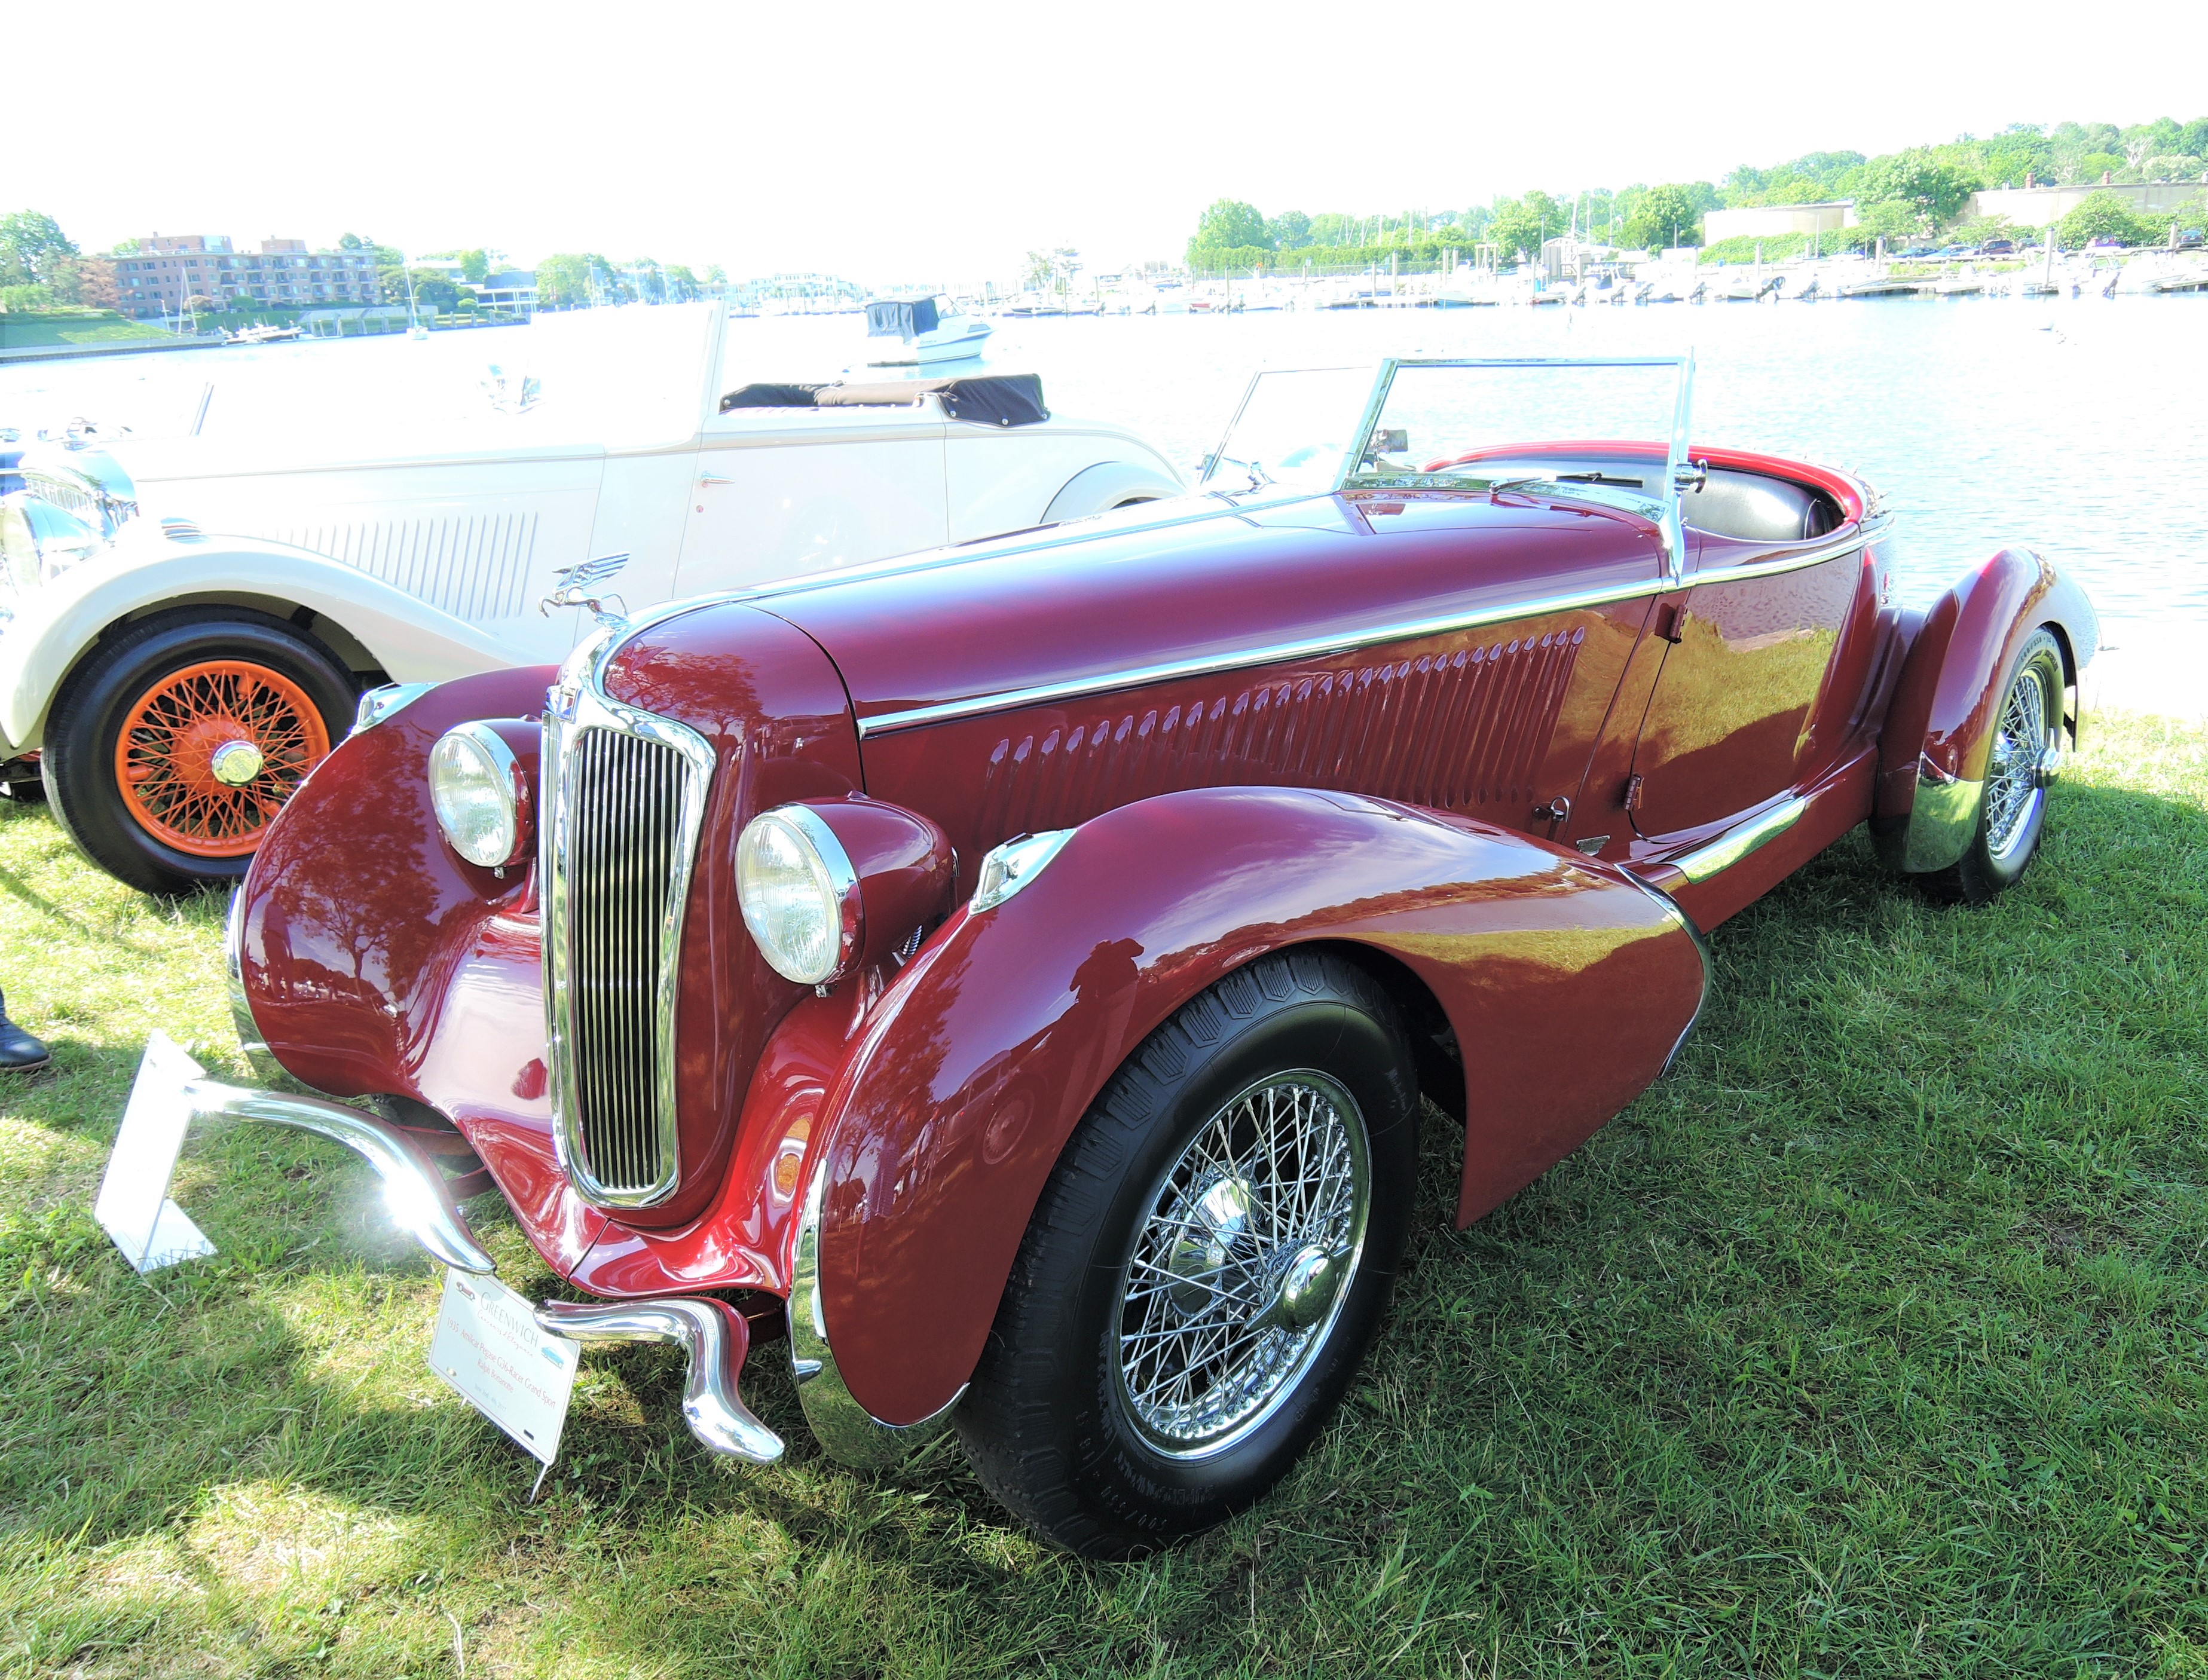 red 1935 Amilcar Pegase G36-Racer Grand Sport Roadster - Greenwich Concours d'Elegance 2017